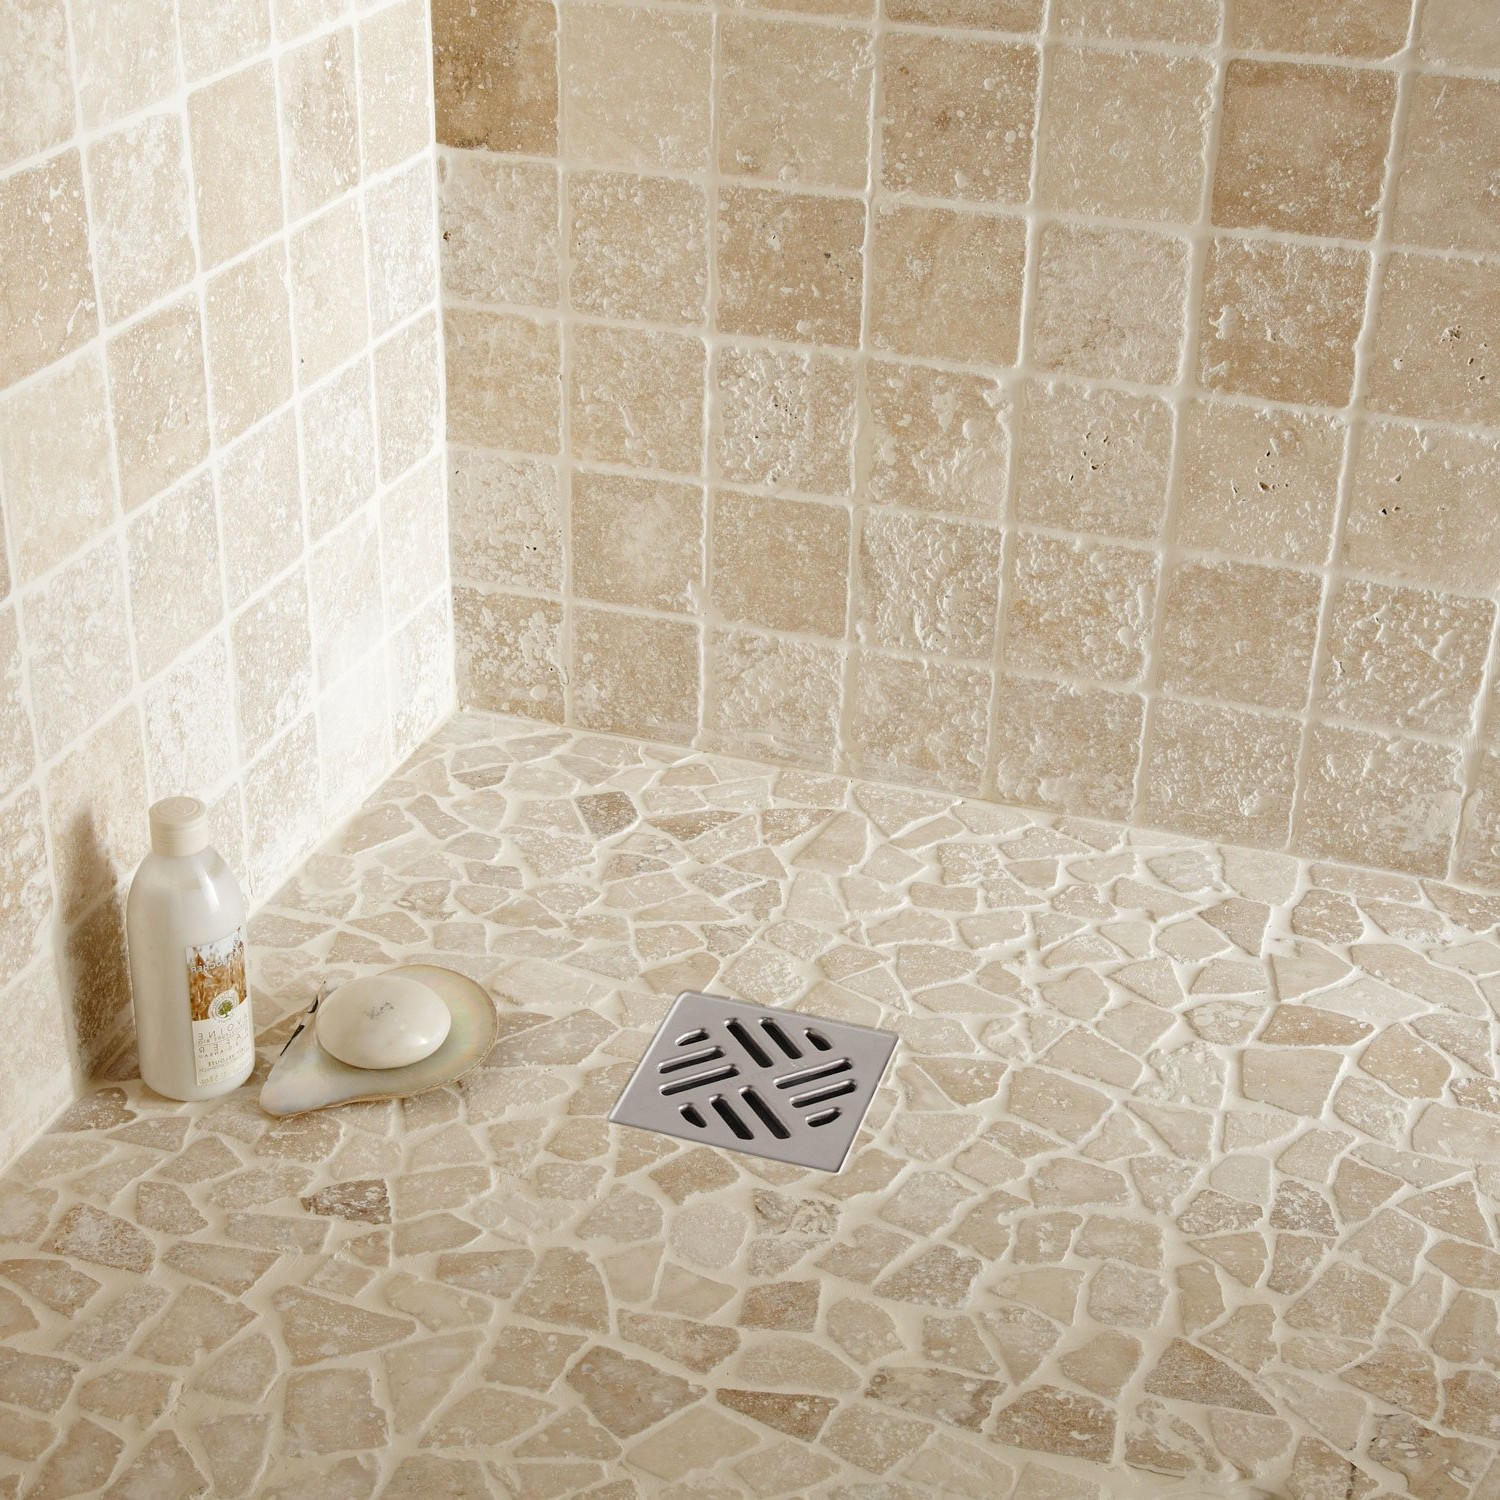 Beautiful travertin salle de bain leroy merlin photos for Carrelage leroy merlin